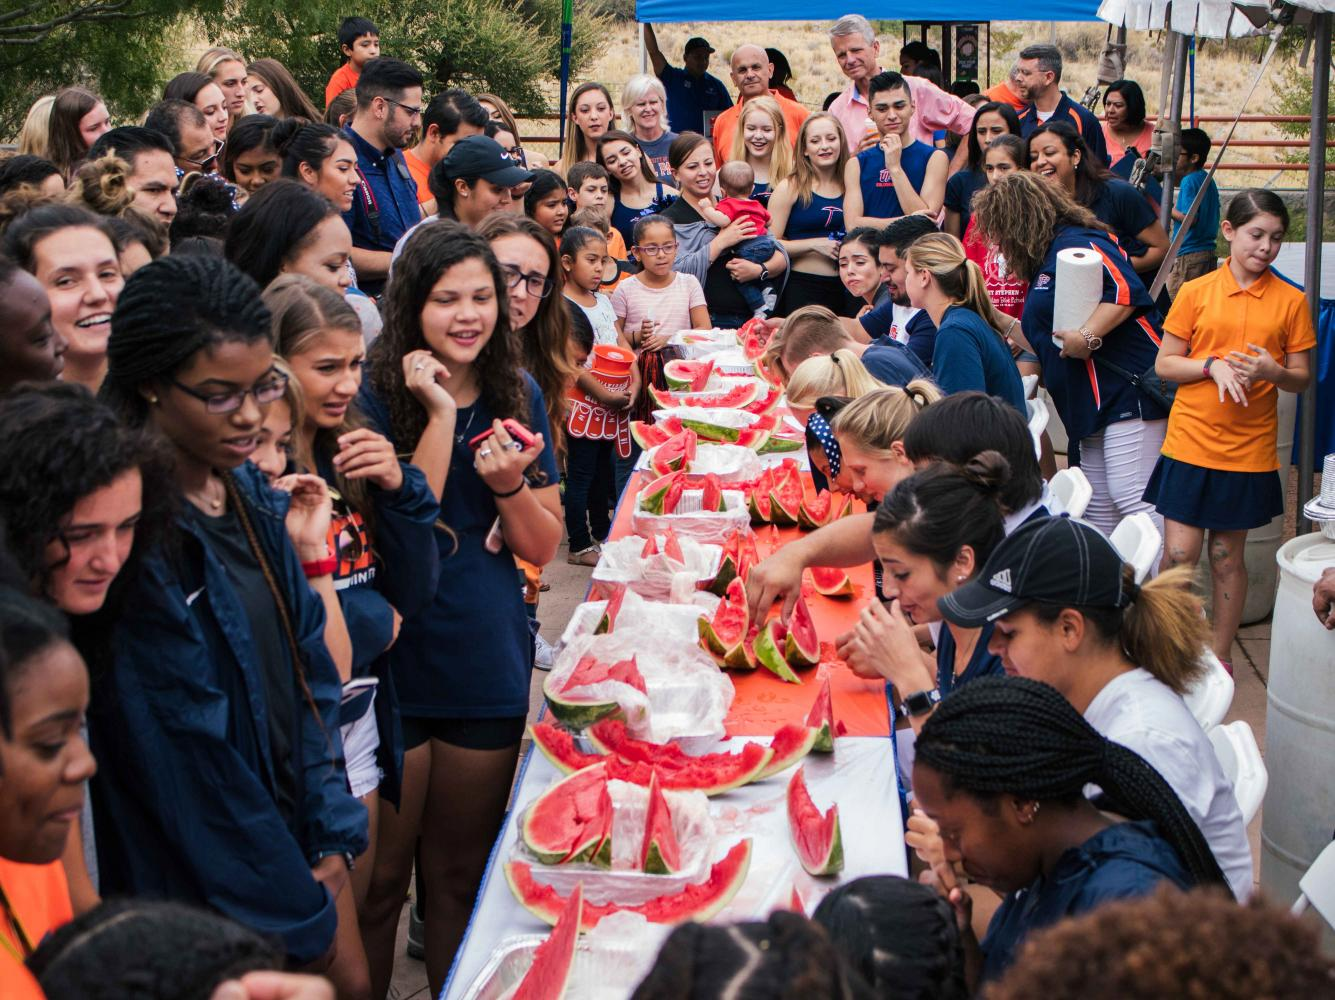 UTEP students took part in a watermelon eating contest.